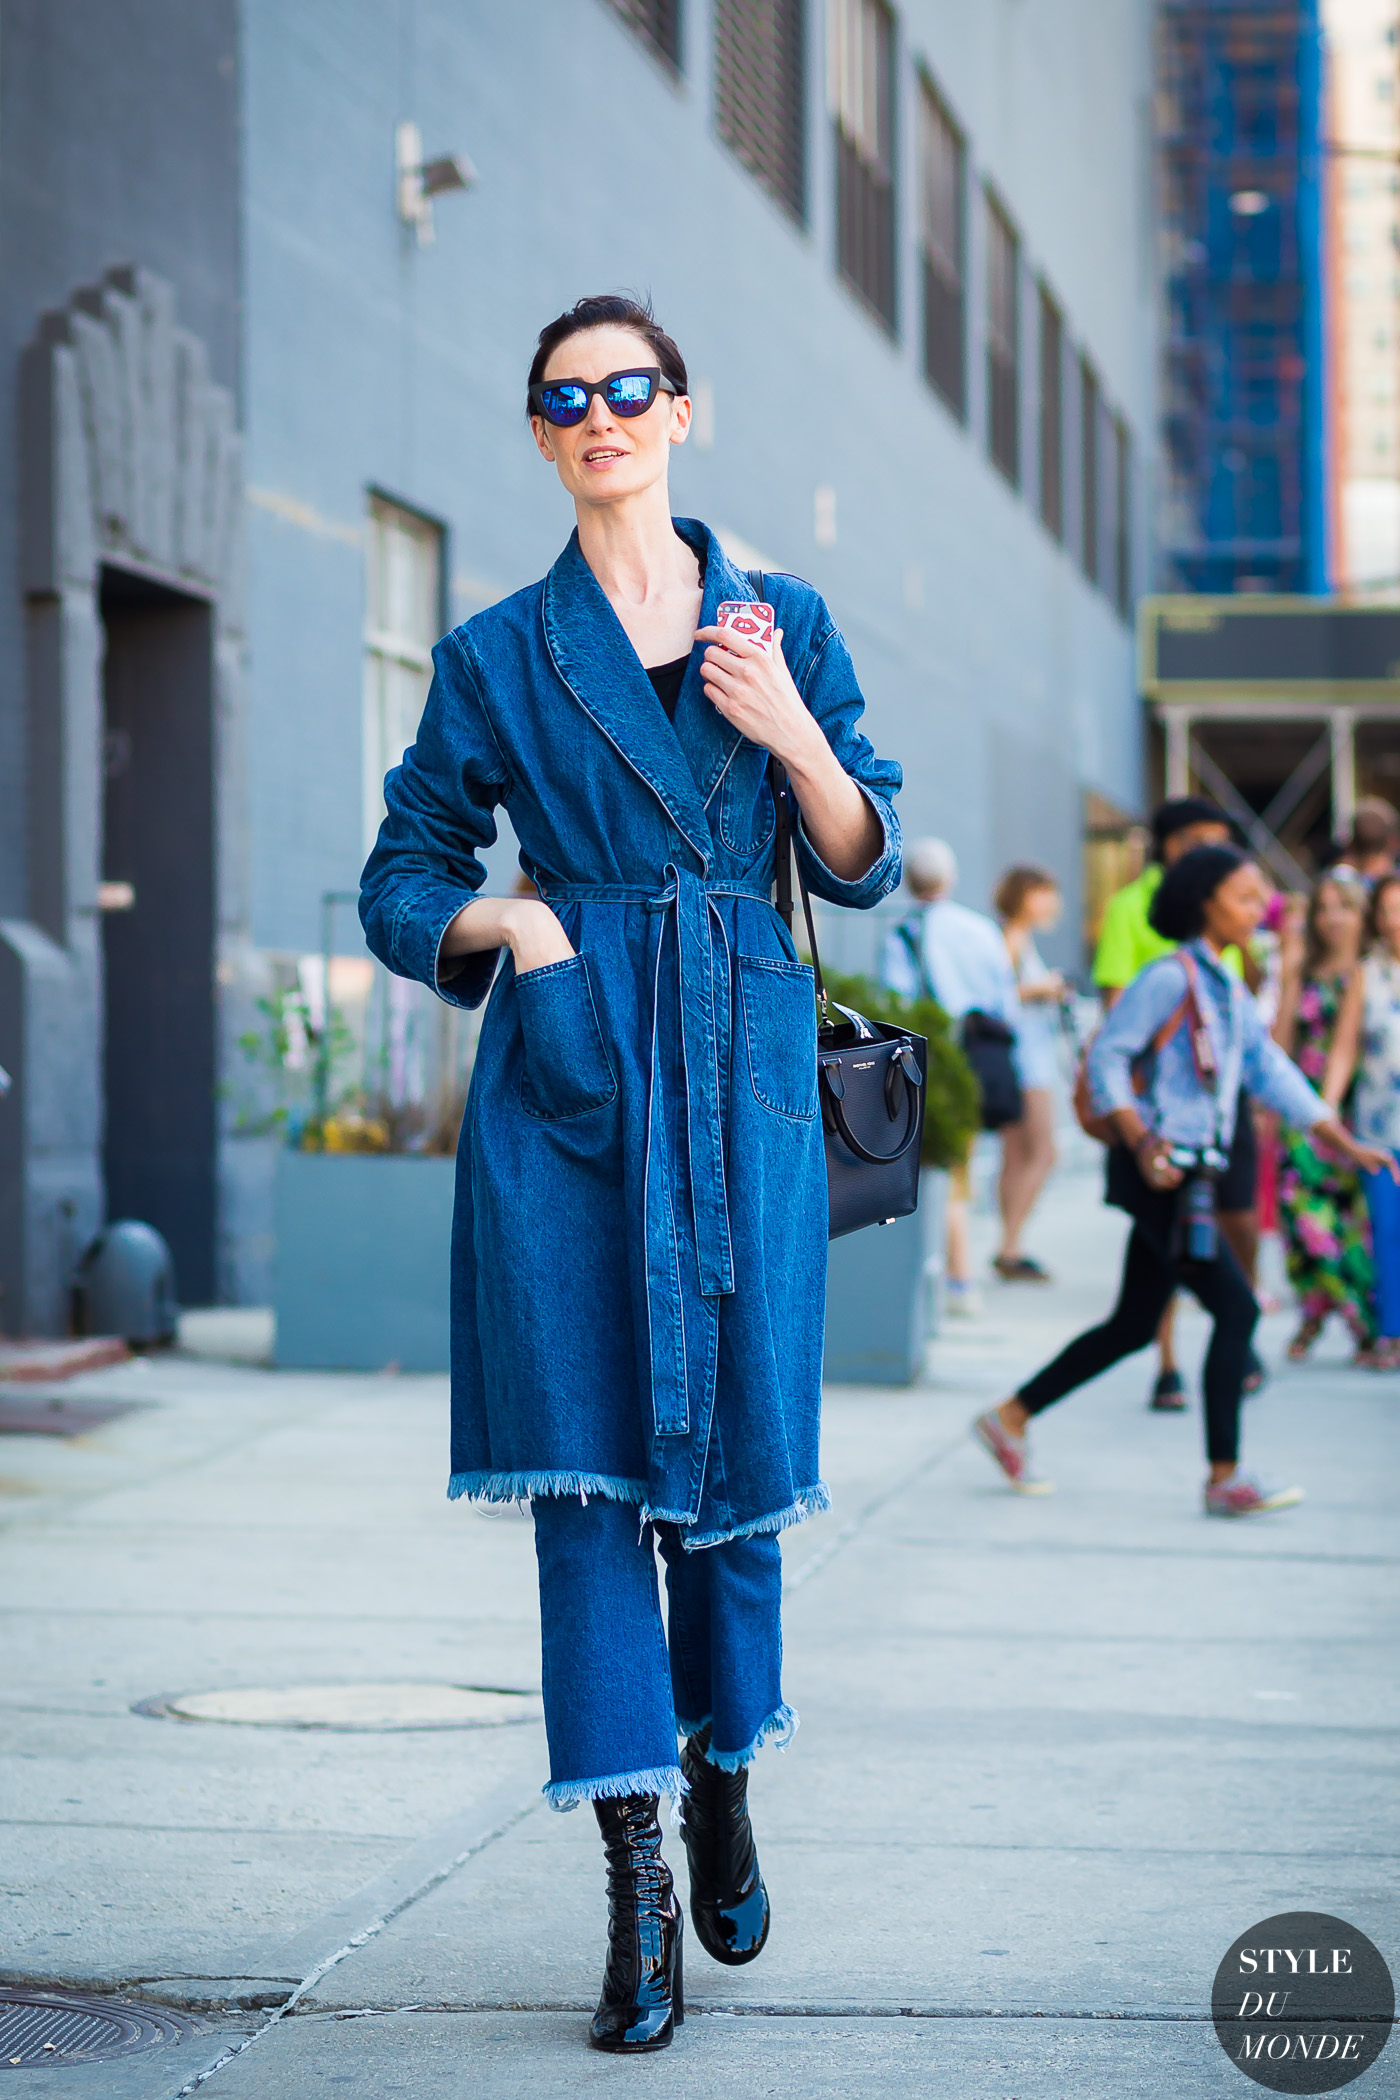 Erin O'Connor Street Style Street Fashion Streetsnaps by STYLEDUMONDE Street Style Fashion Photography